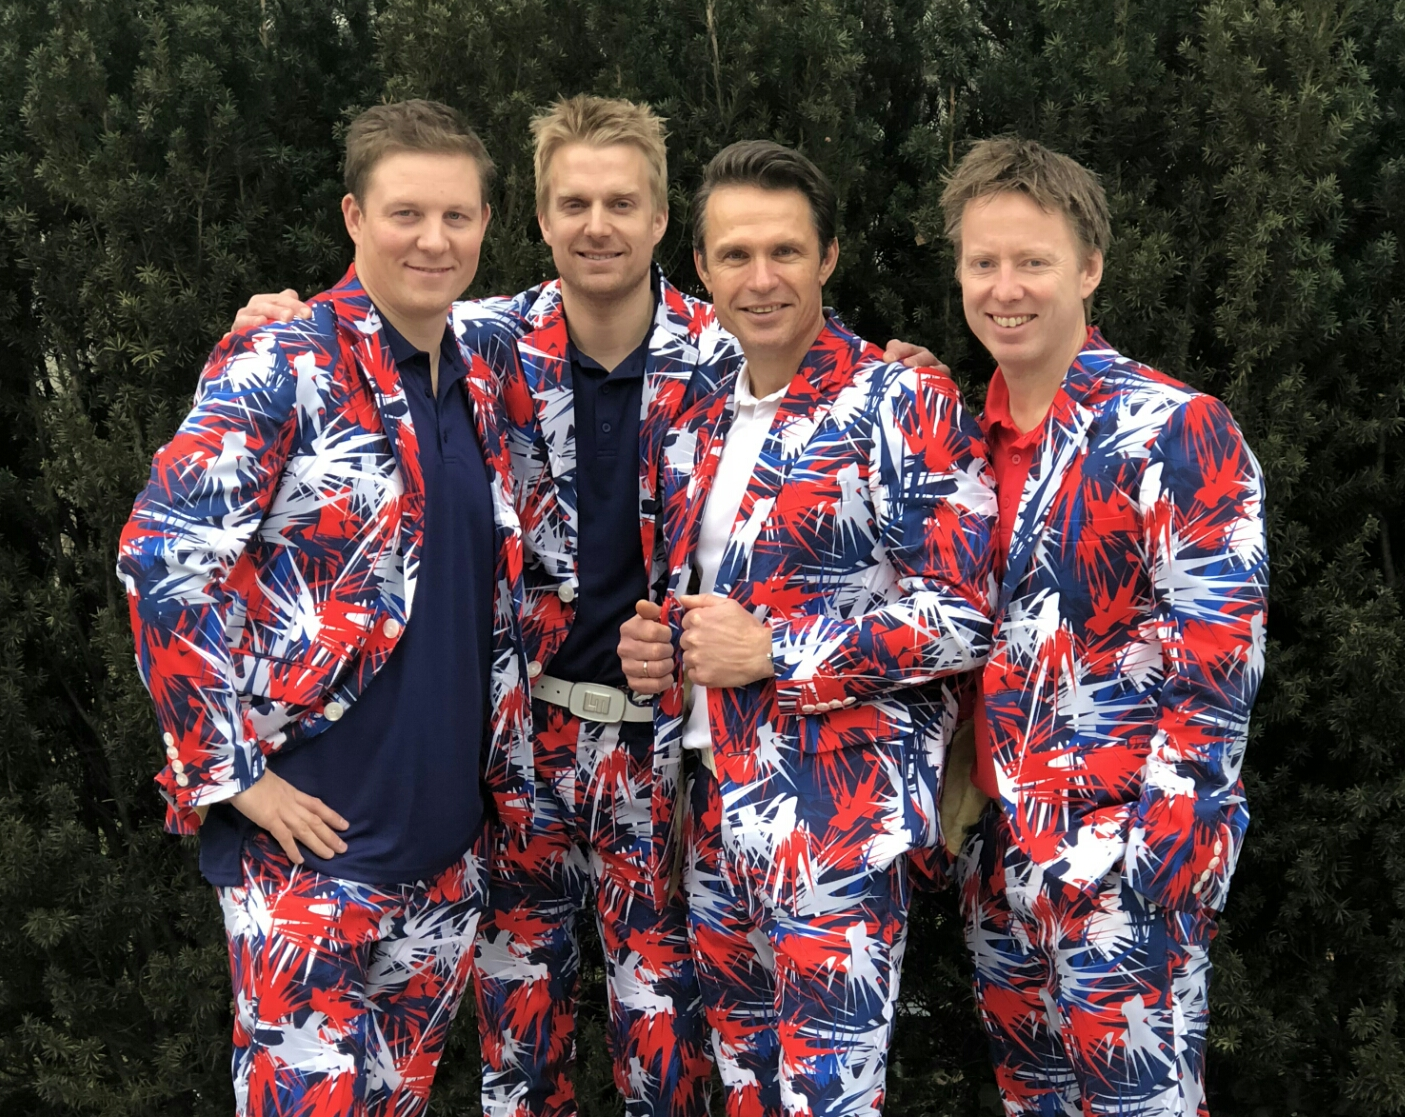 The Norway men's curling team for the 2018 PyeongChang Olympics, from left:                      Christoffer Svae, Haavard Peterson, Thomas Ulsrud, Torger Nergaard